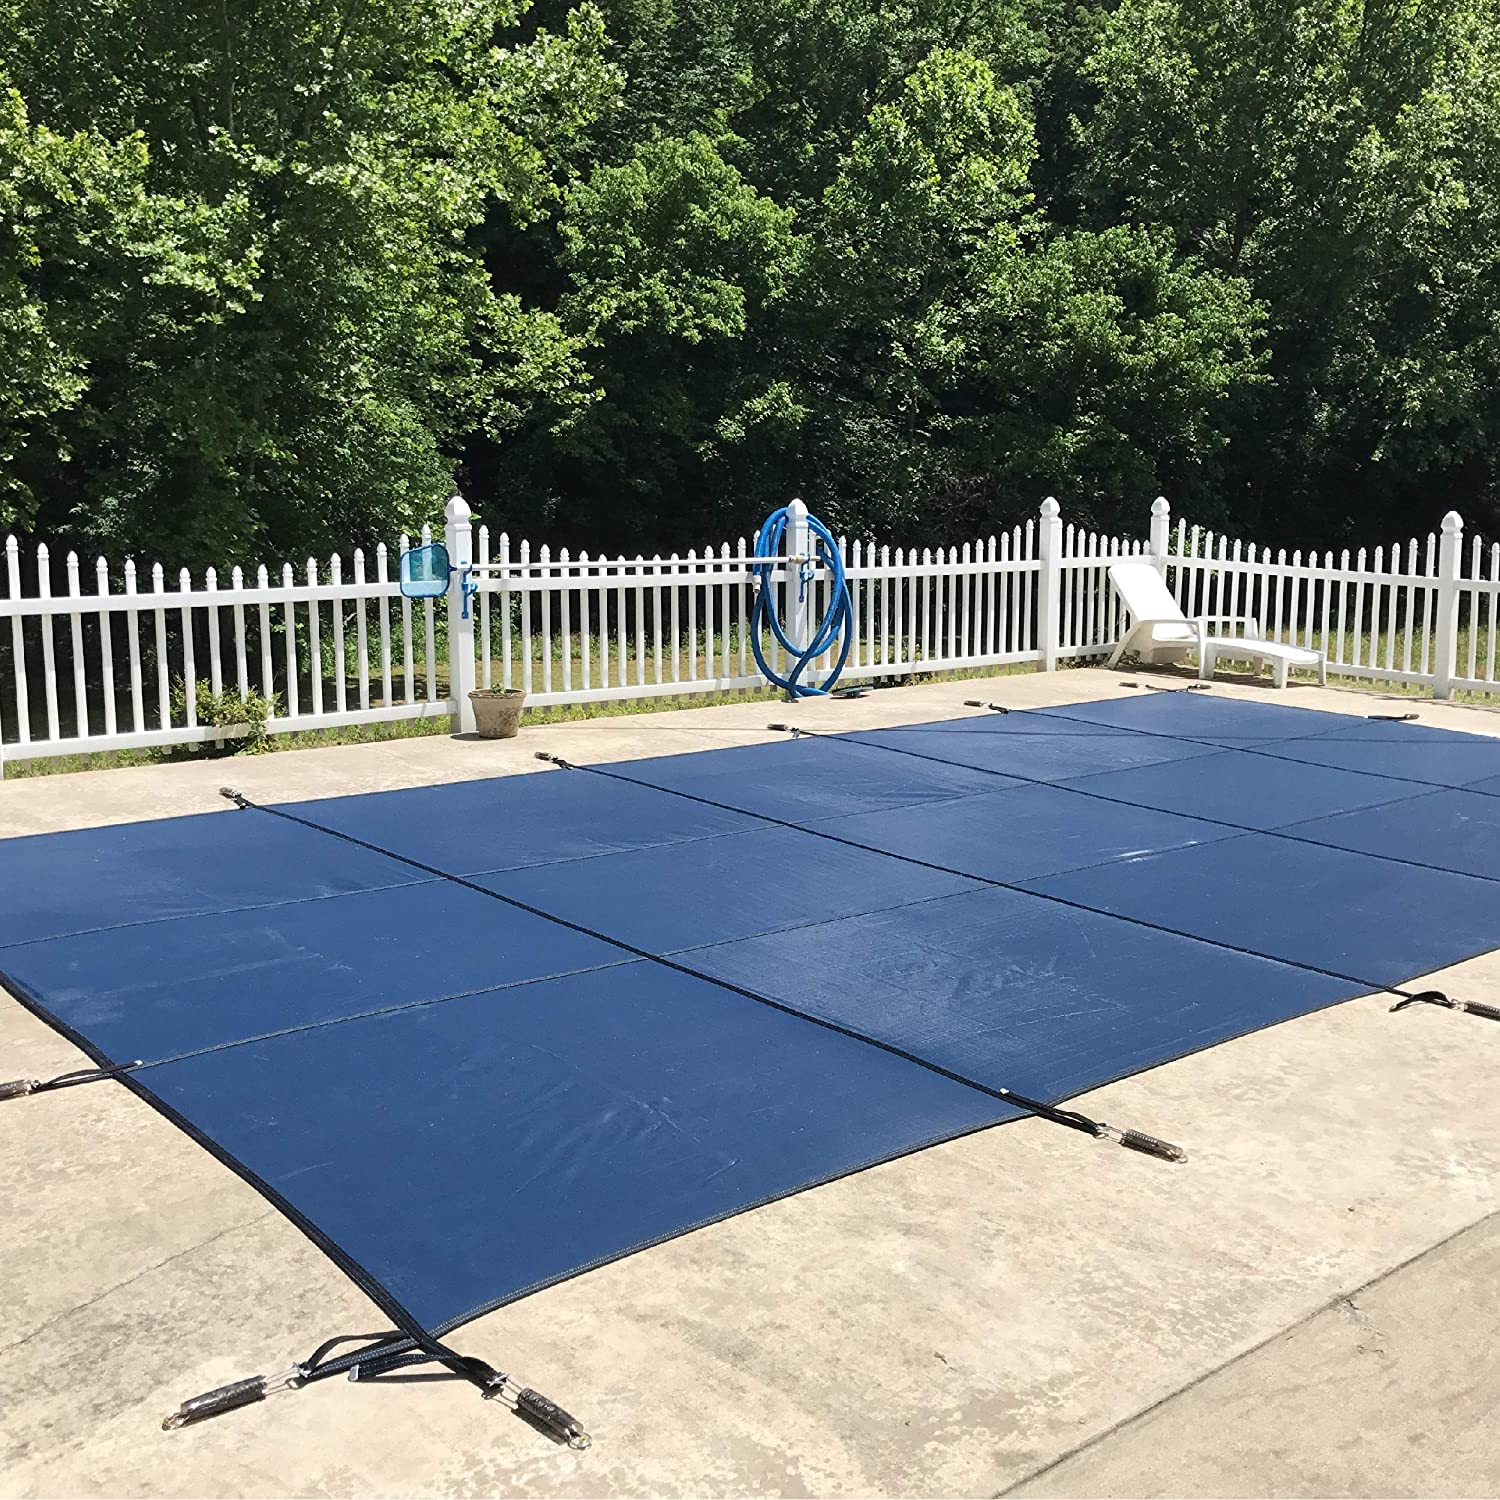 Amazon.com: WaterWarden Safety Inground Pool Cover, Fits 12' x 20', Blue Mesh Easy Installation, Triple Stitched for Maximum Strength, Includes All Needed Hardware, SCMB1220 : Everything Else